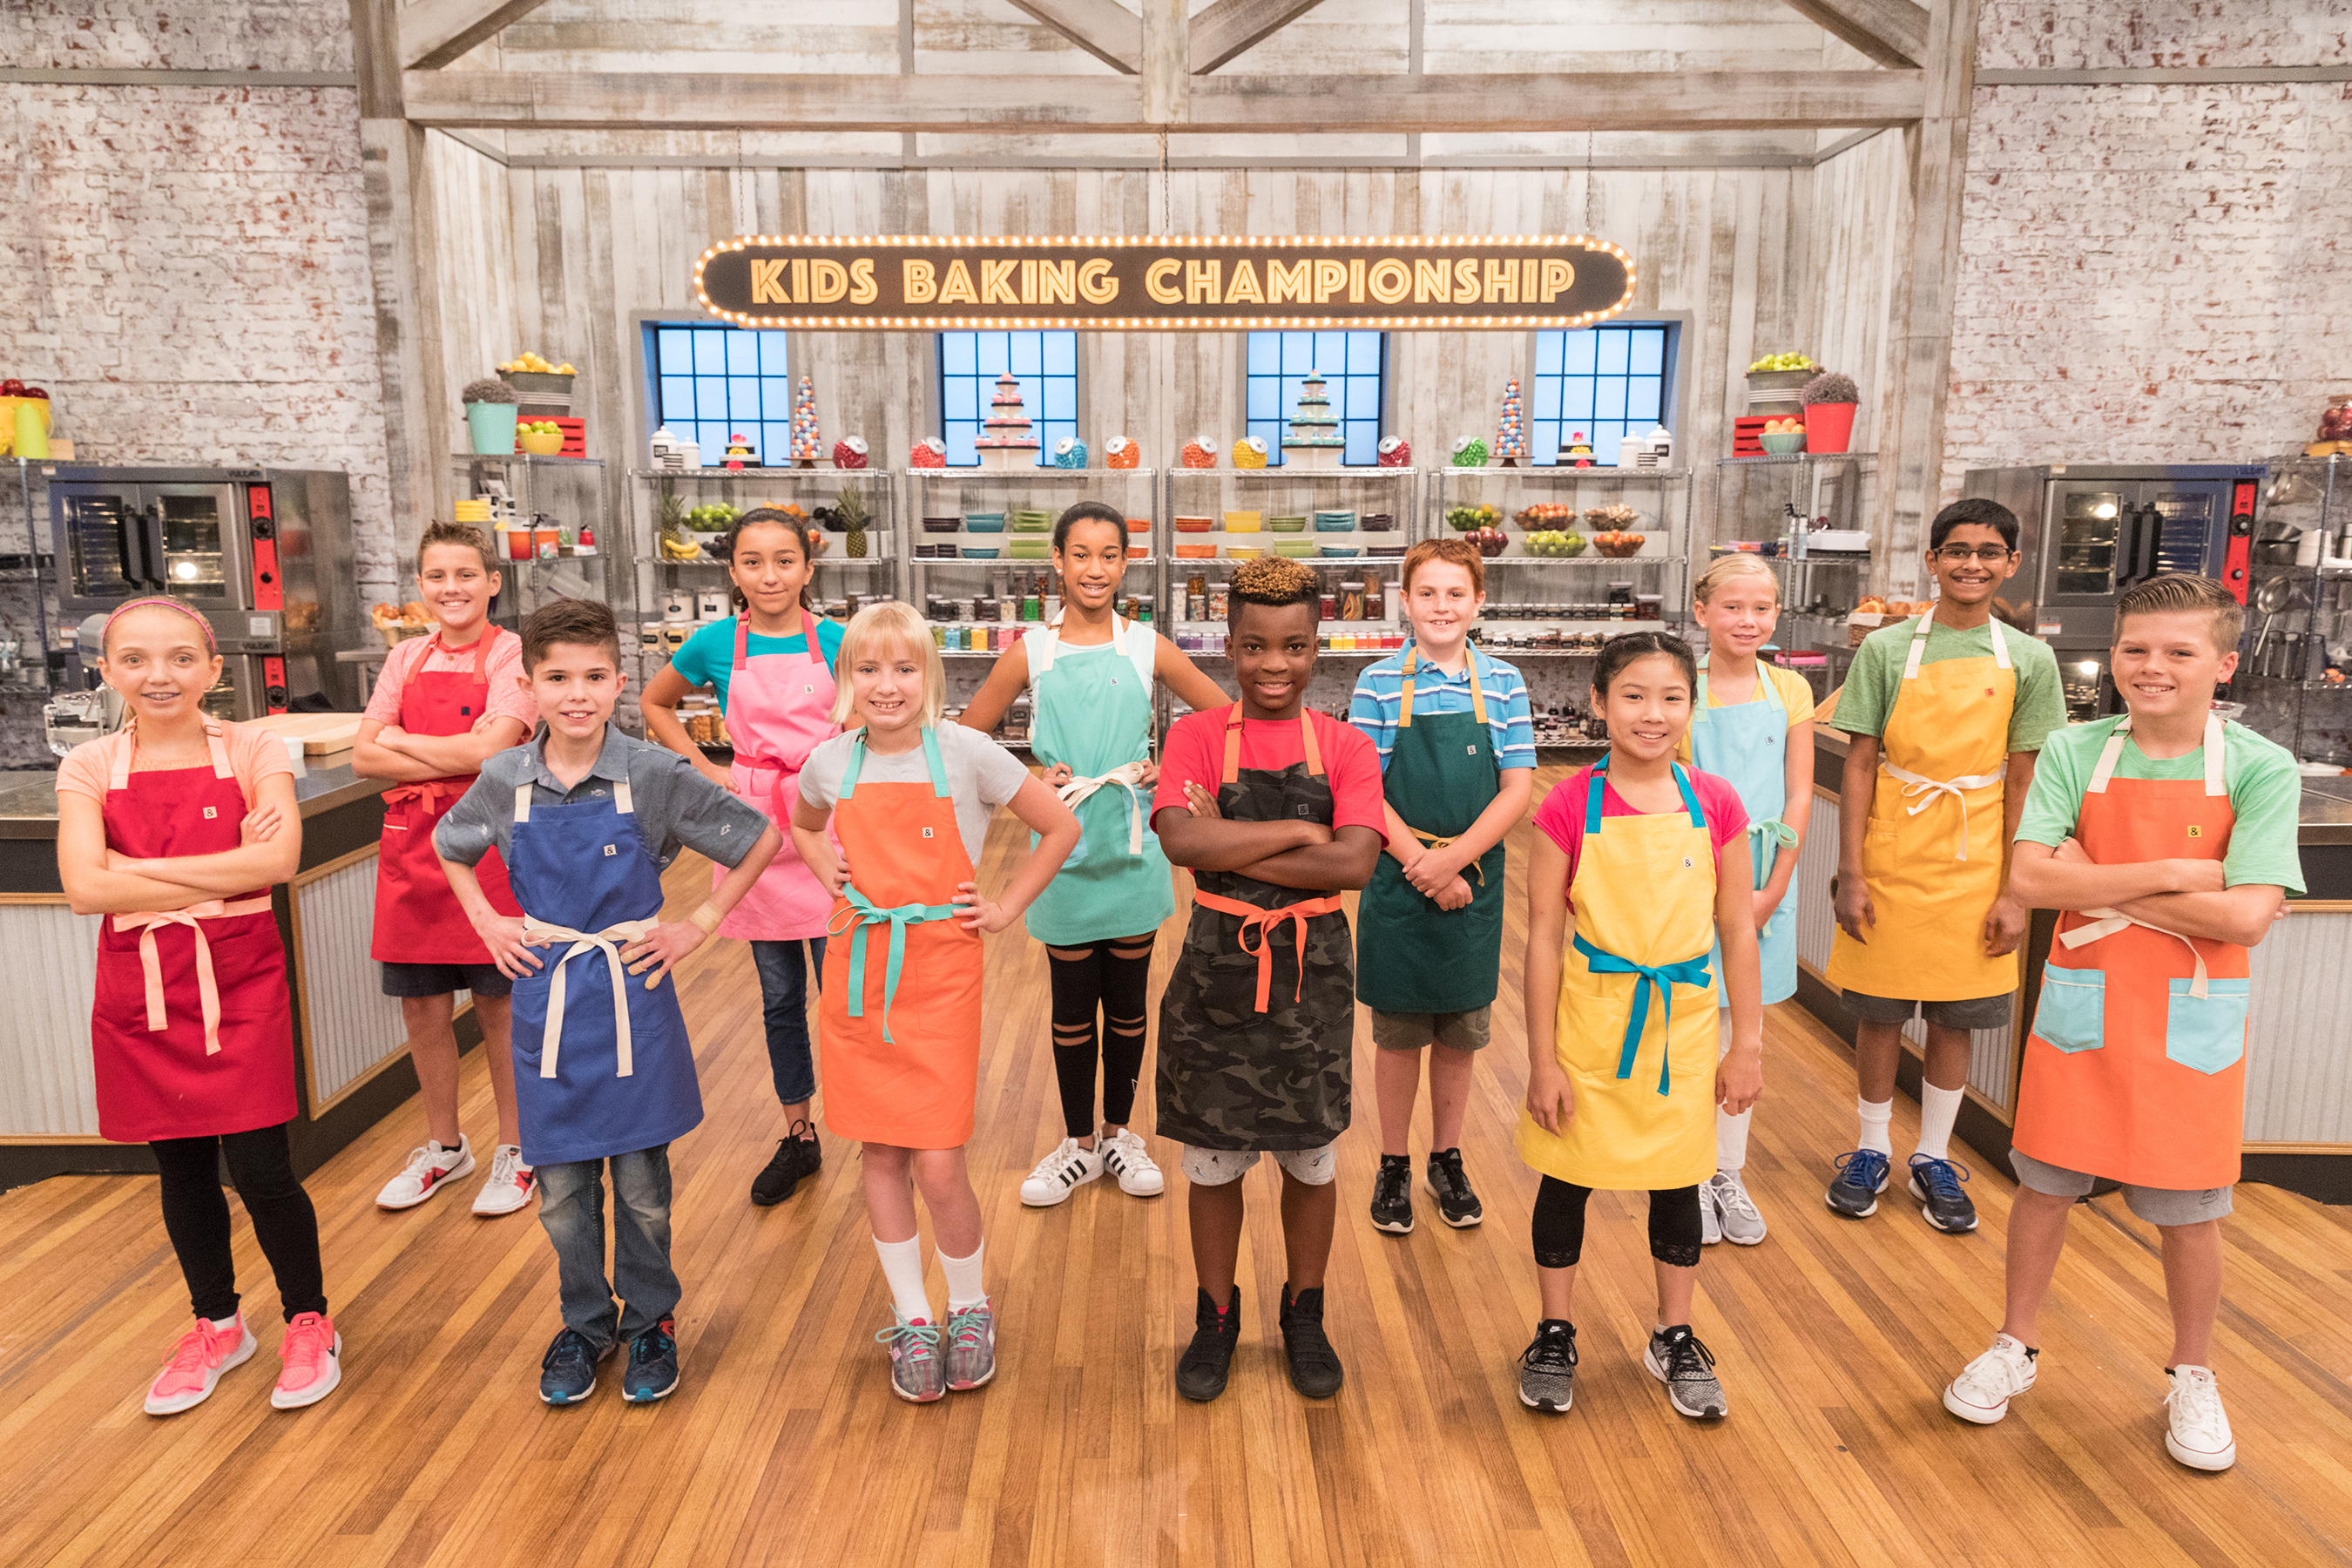 The contestants of Food Network's Kids Baking Championship